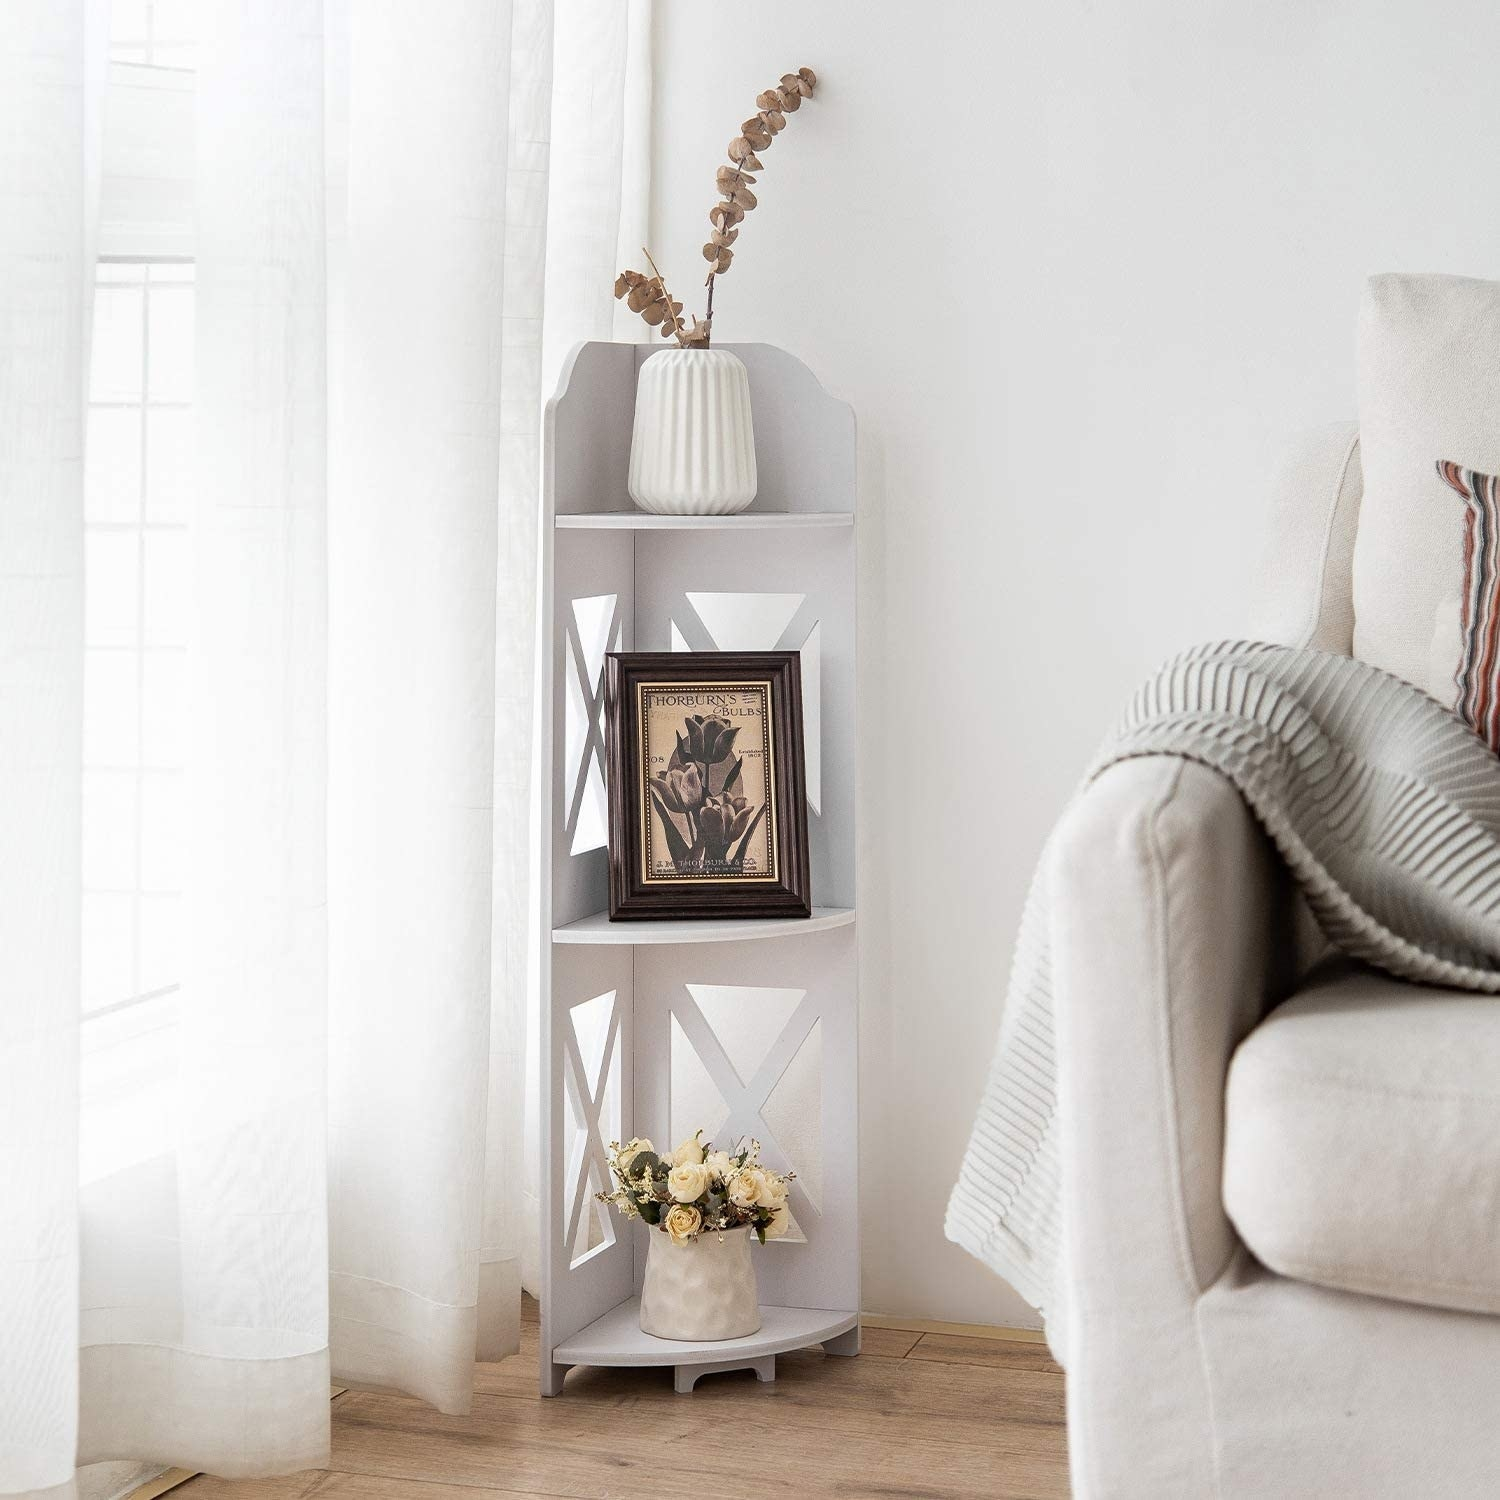 A small white corner shelving unit with three shelves holding plants and frames